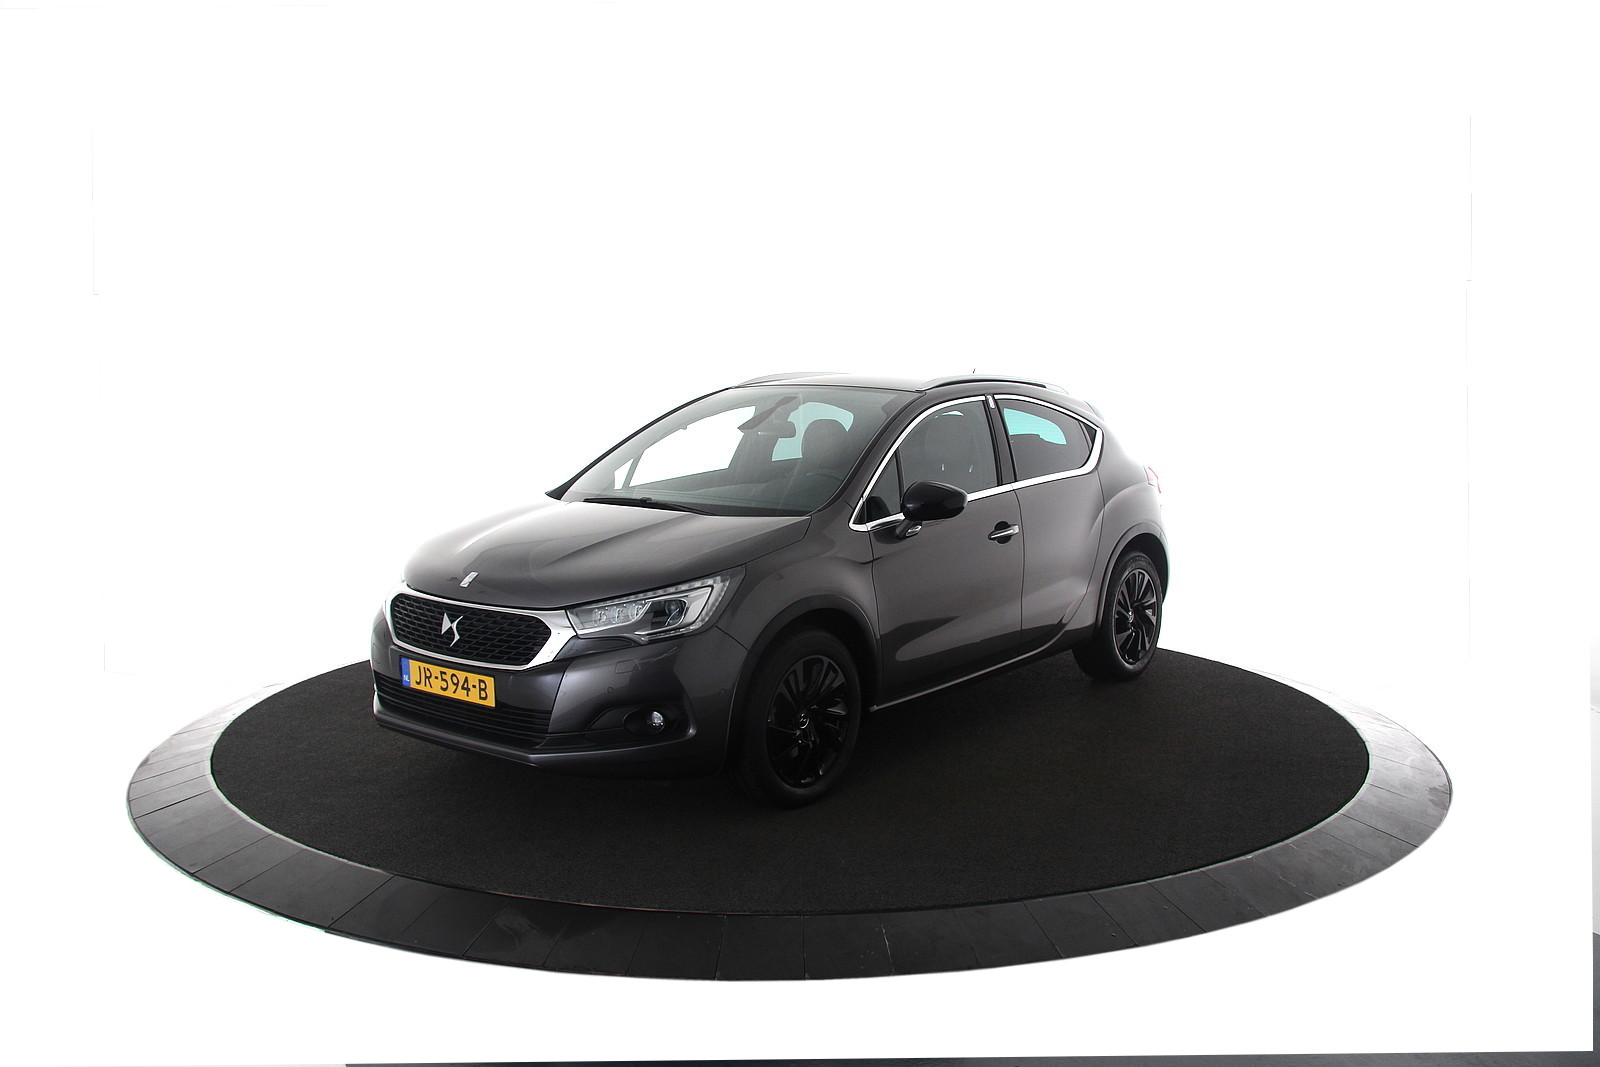 DS DS 4 Crossback 1.6 THP Chic 165PK Automaat